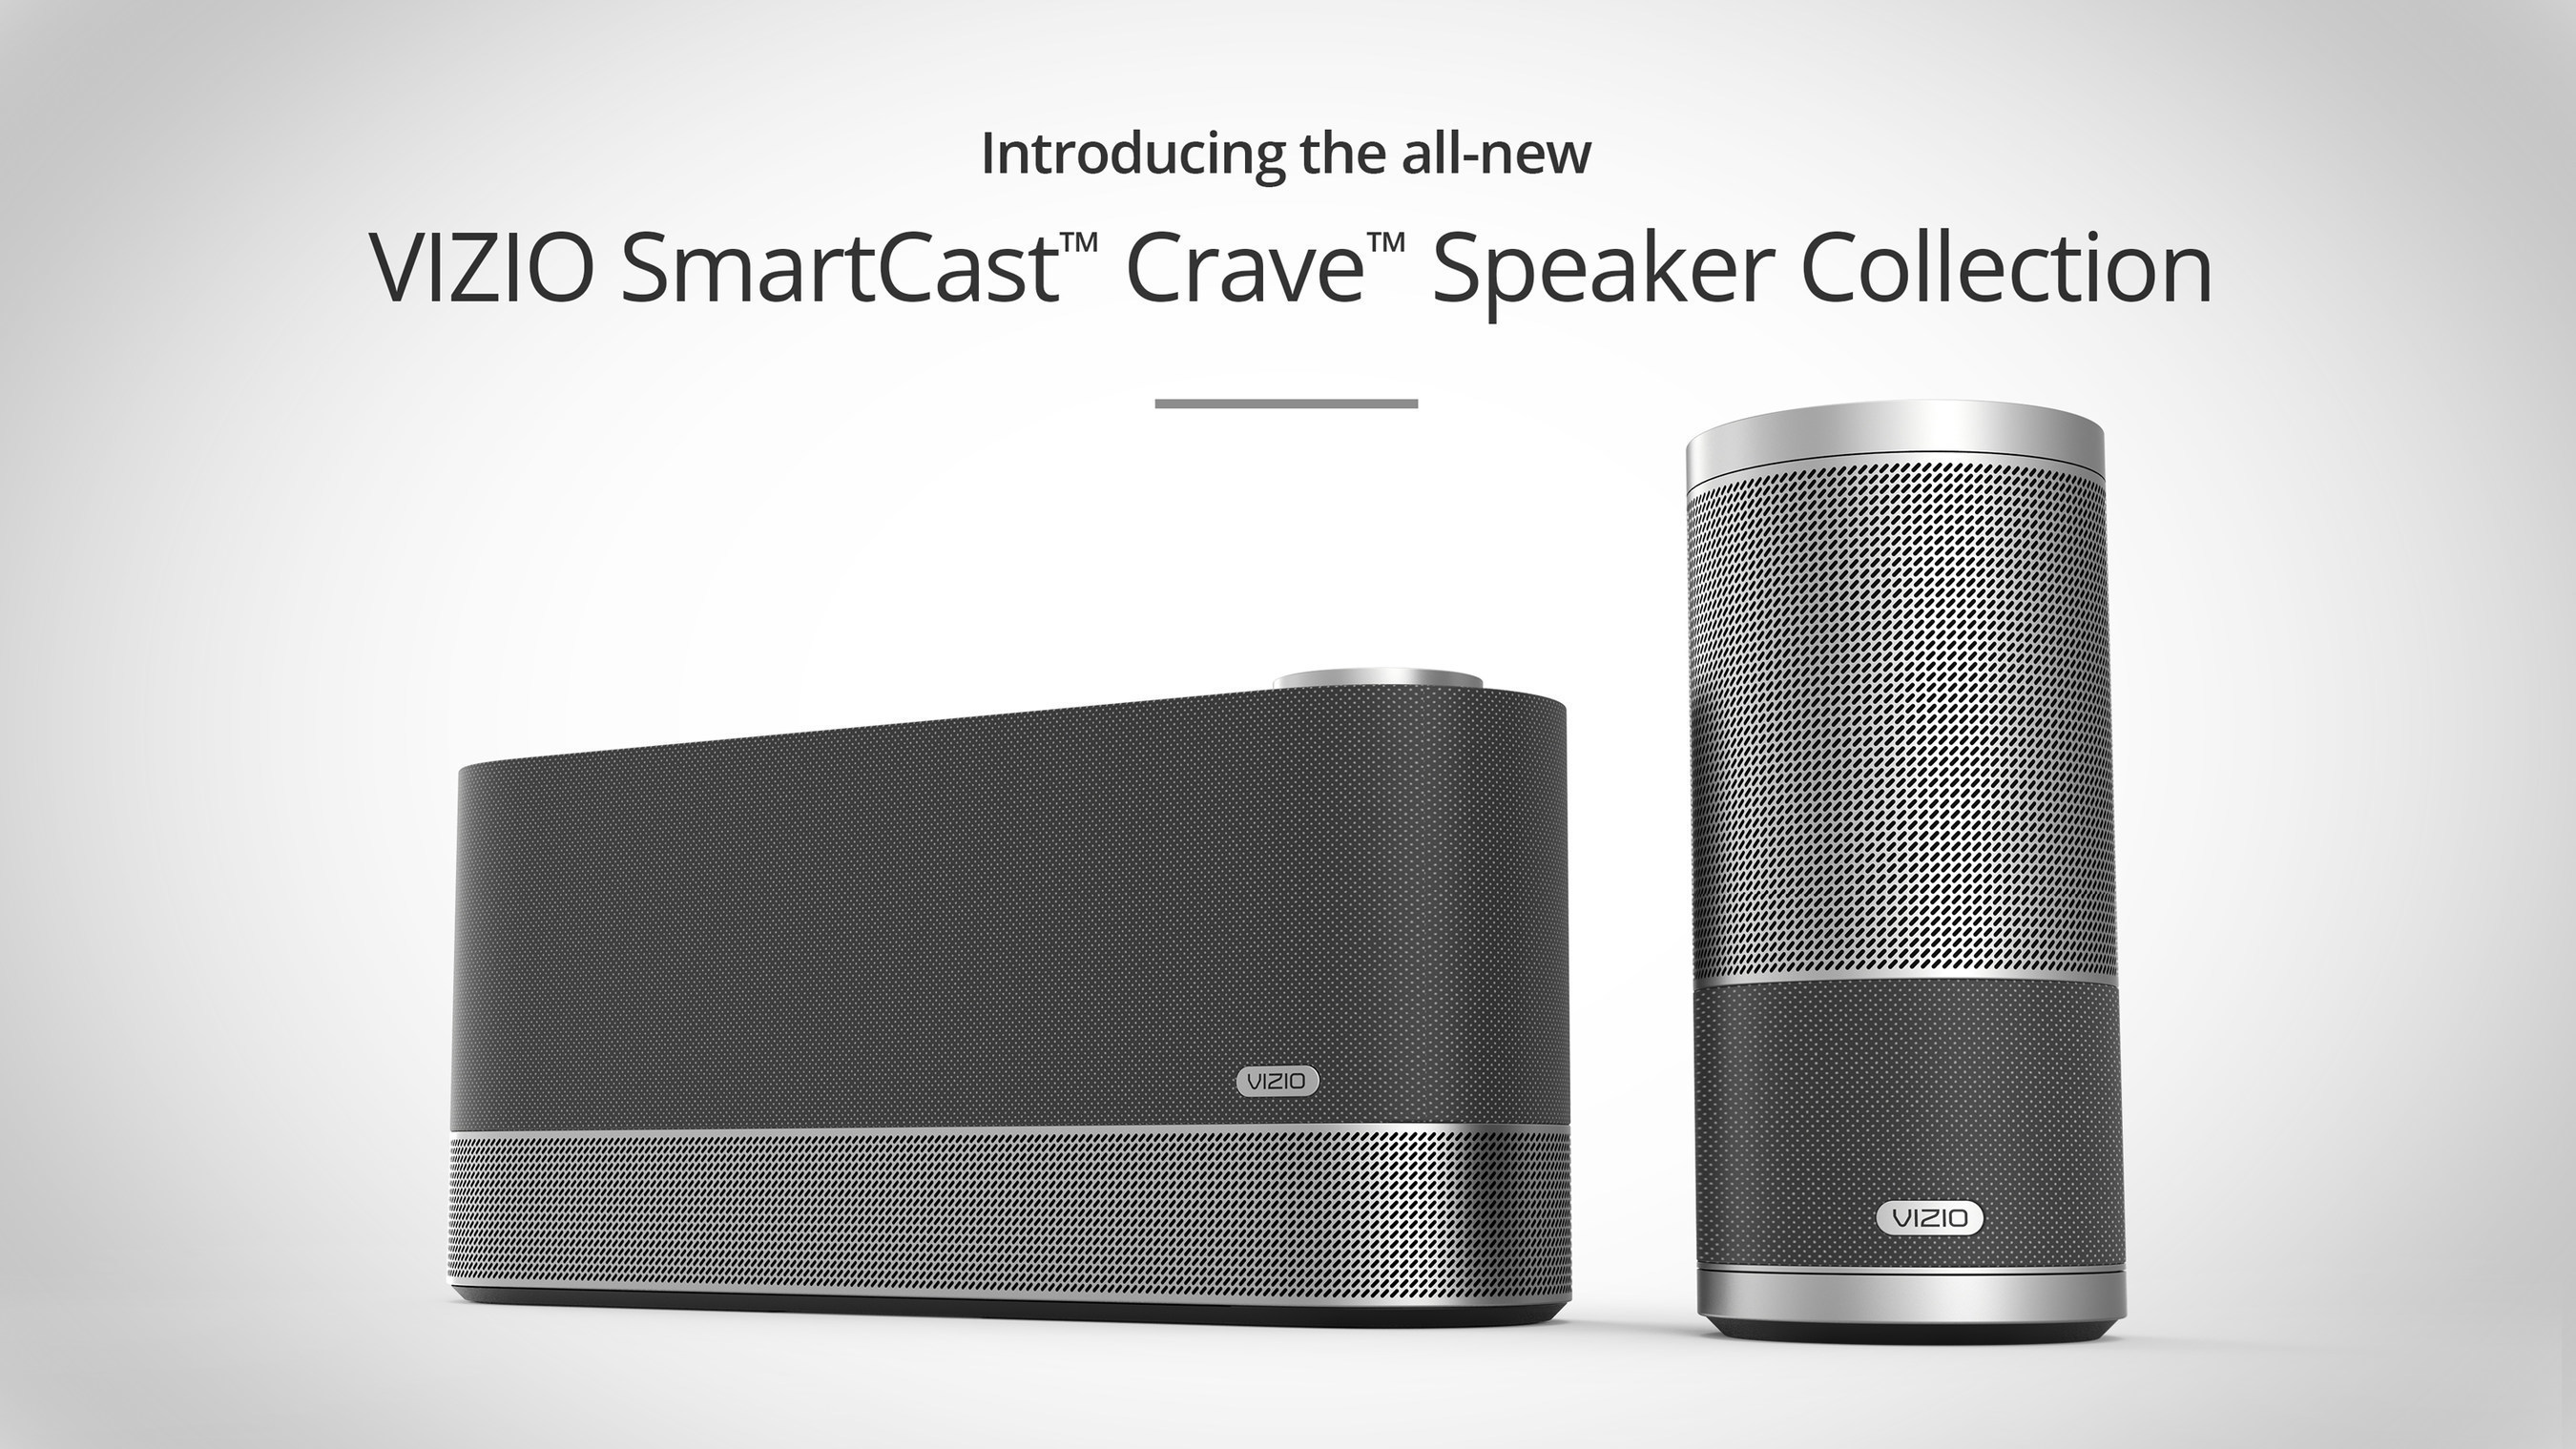 VIZIO Expands VIZIO SmartCast Collection with Addition of All-New Multi-Room Speakers Designed for Whole-Home Audio Entertainment. VIZIO SmartCast Crave Pro and Crave 360 Speakers Fully Integrate Google Cast for Simple WiFi  Streaming.